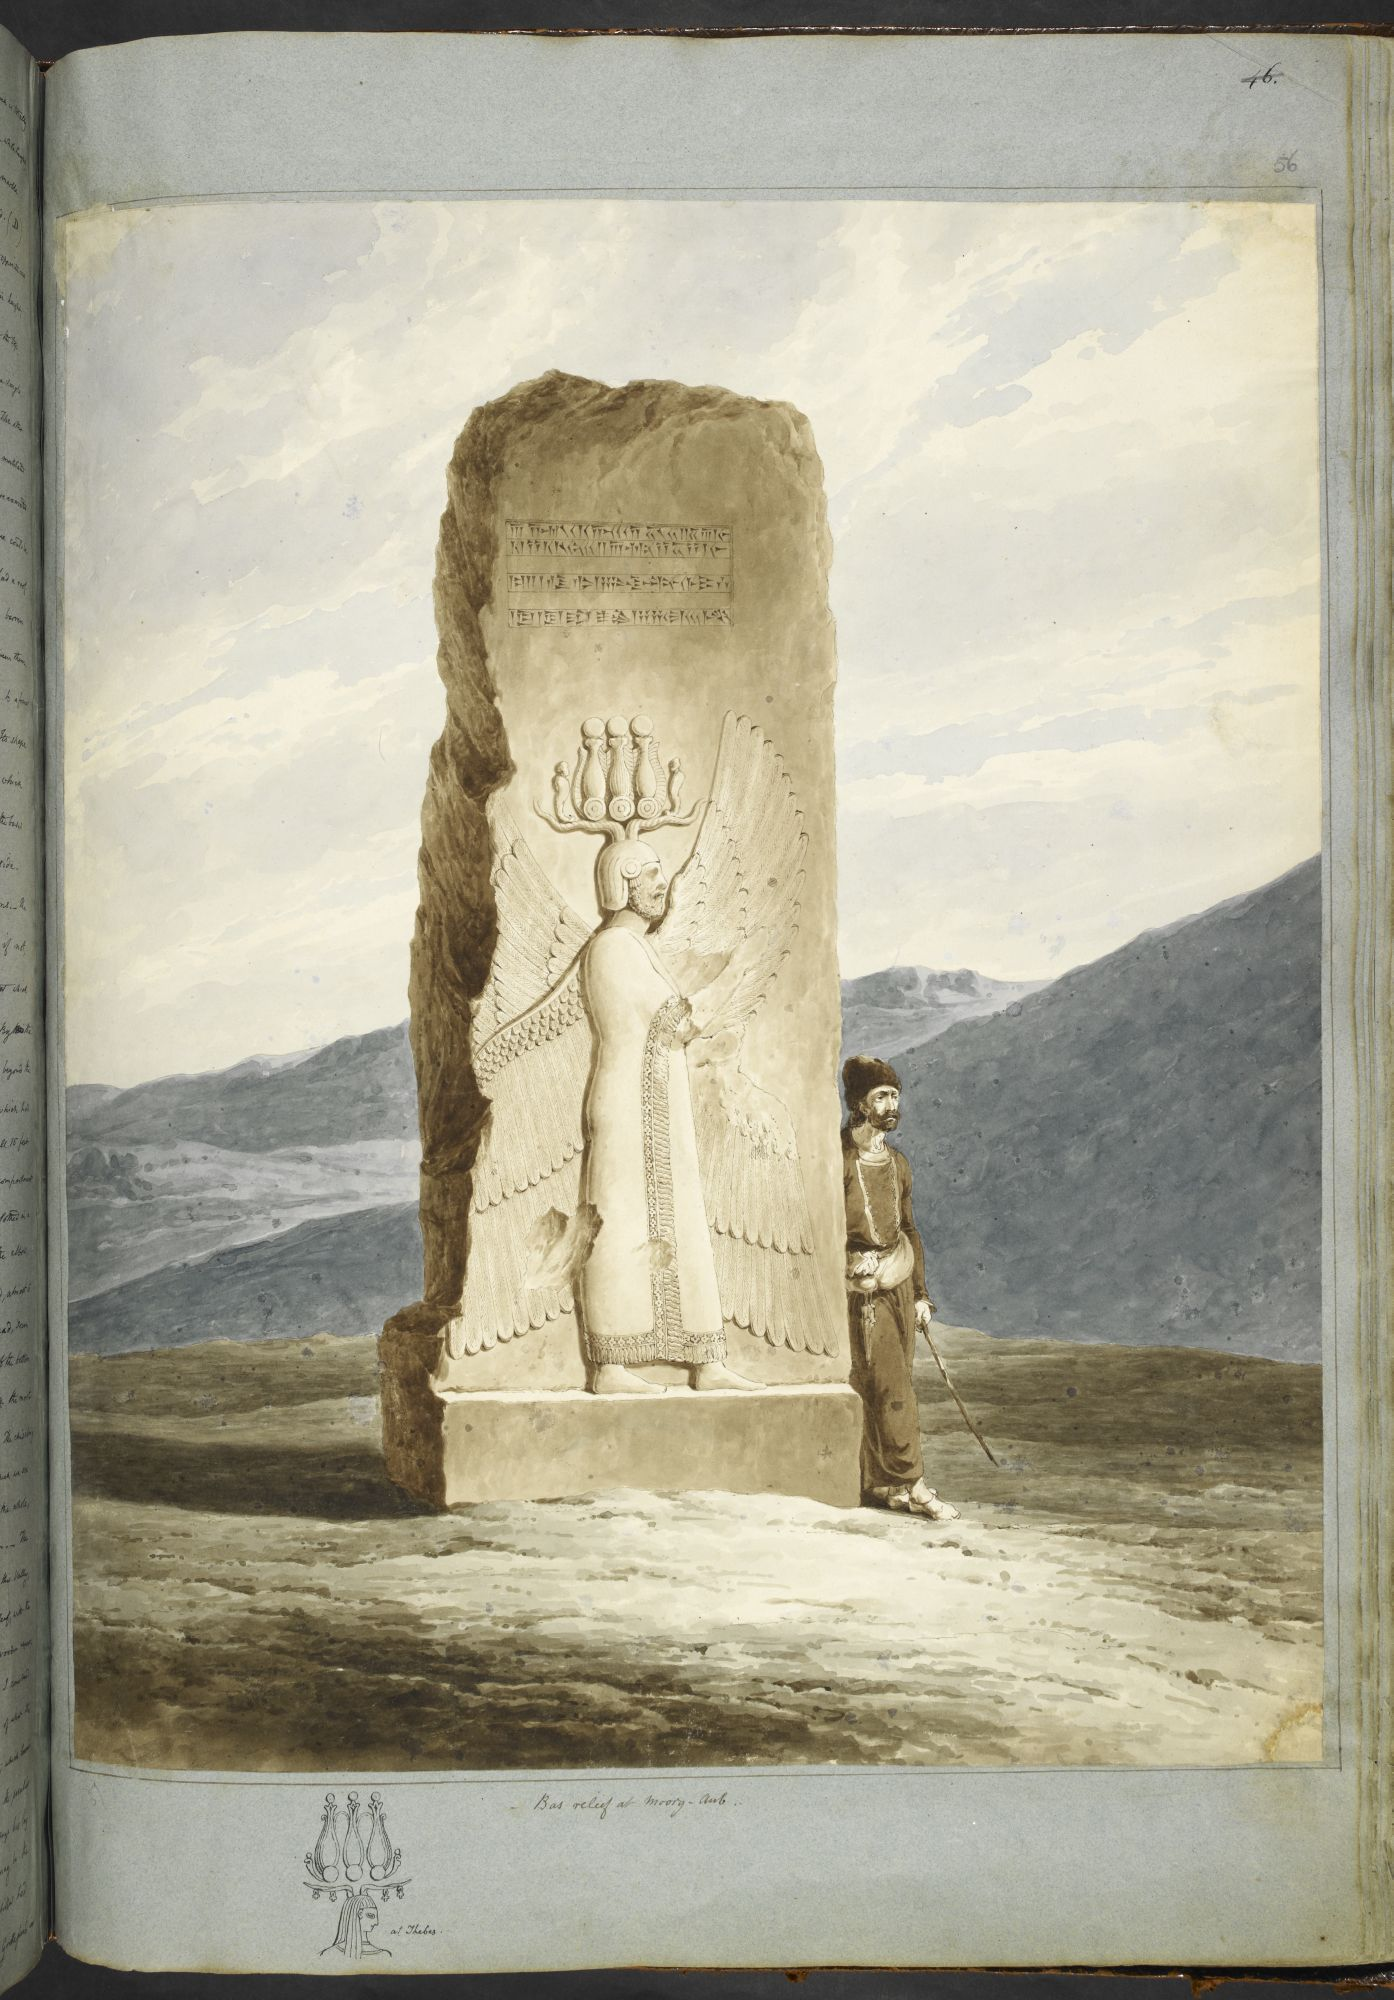 Bas-relief of Cyrus the Great on a pillar at Pasargadae, by Sir Robert Ker Porter.